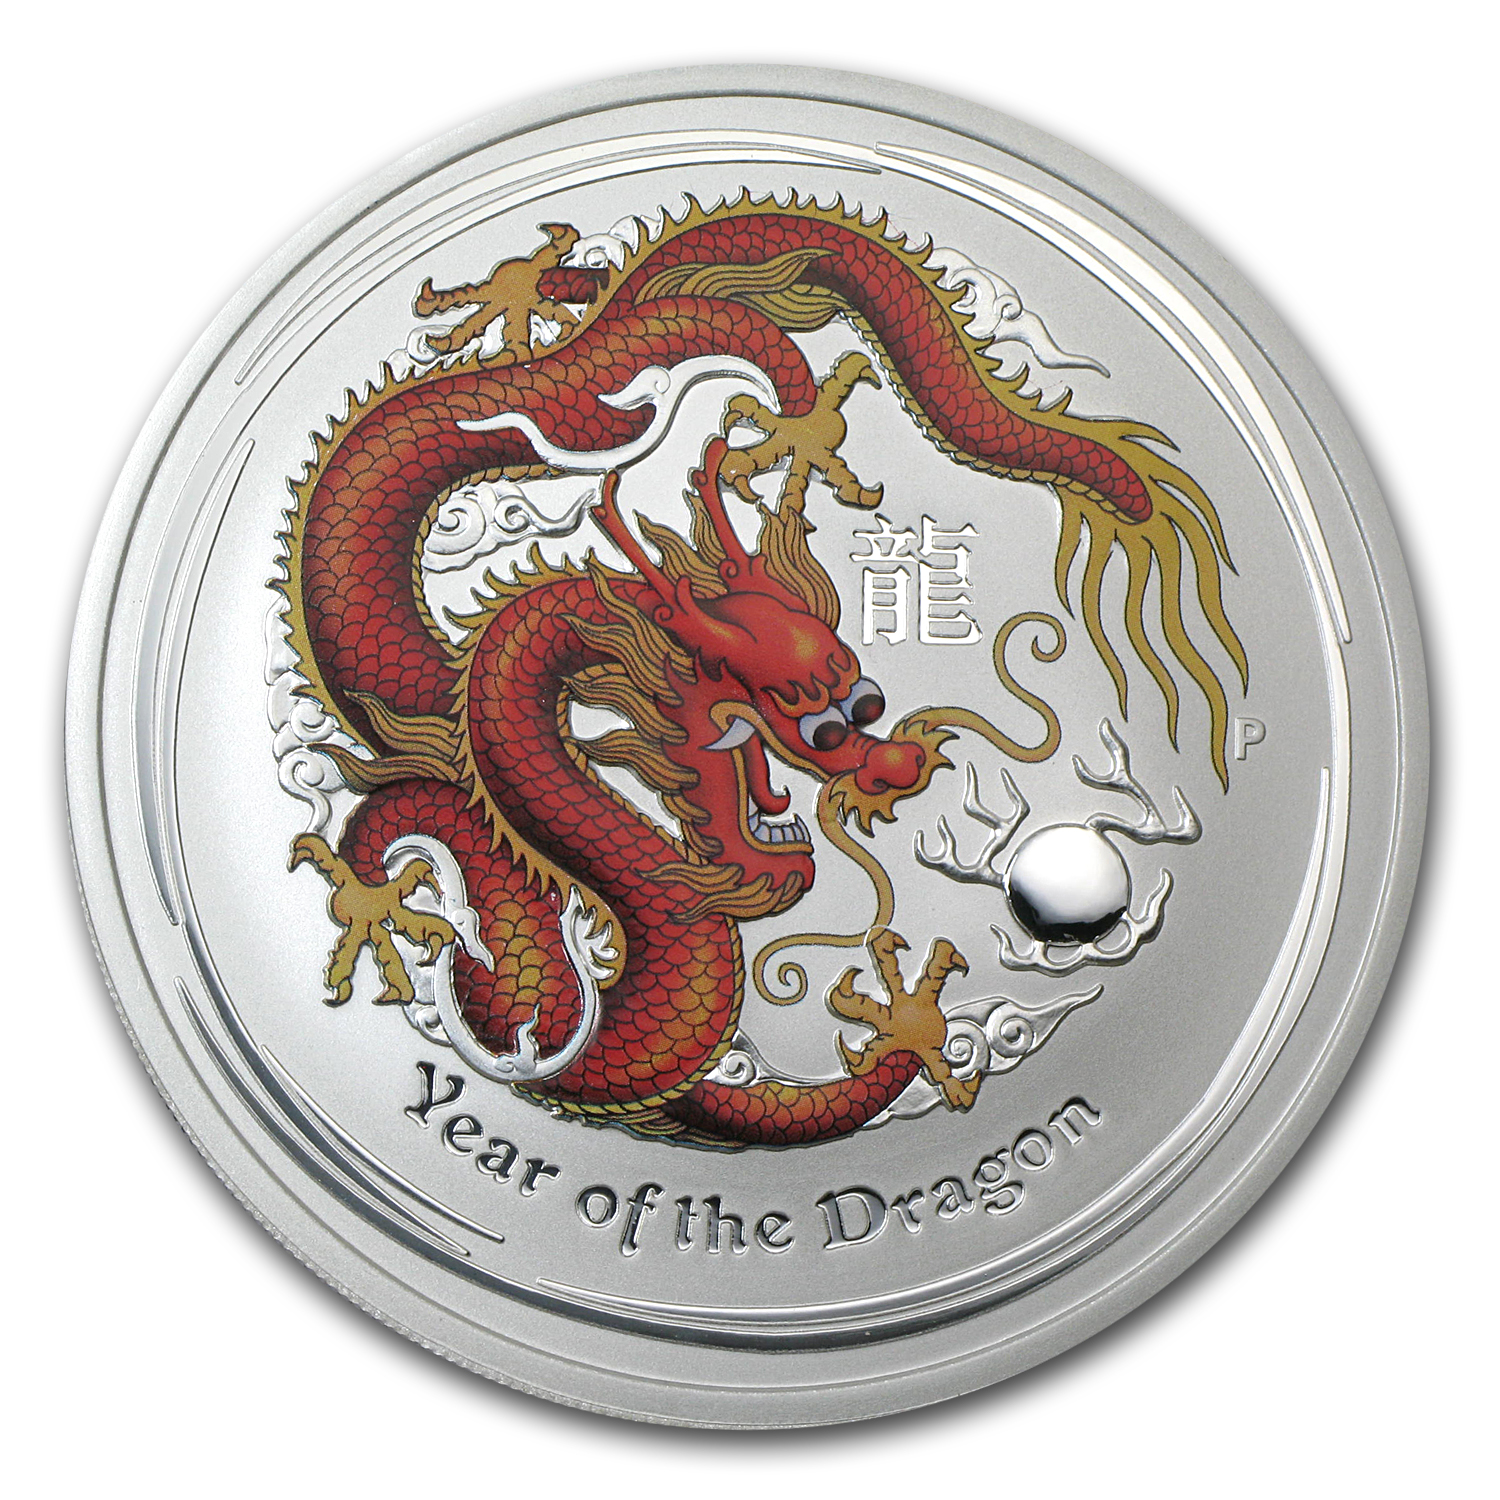 2012 Australia 5 oz Silver Year of the Dragon BU (Colorized)